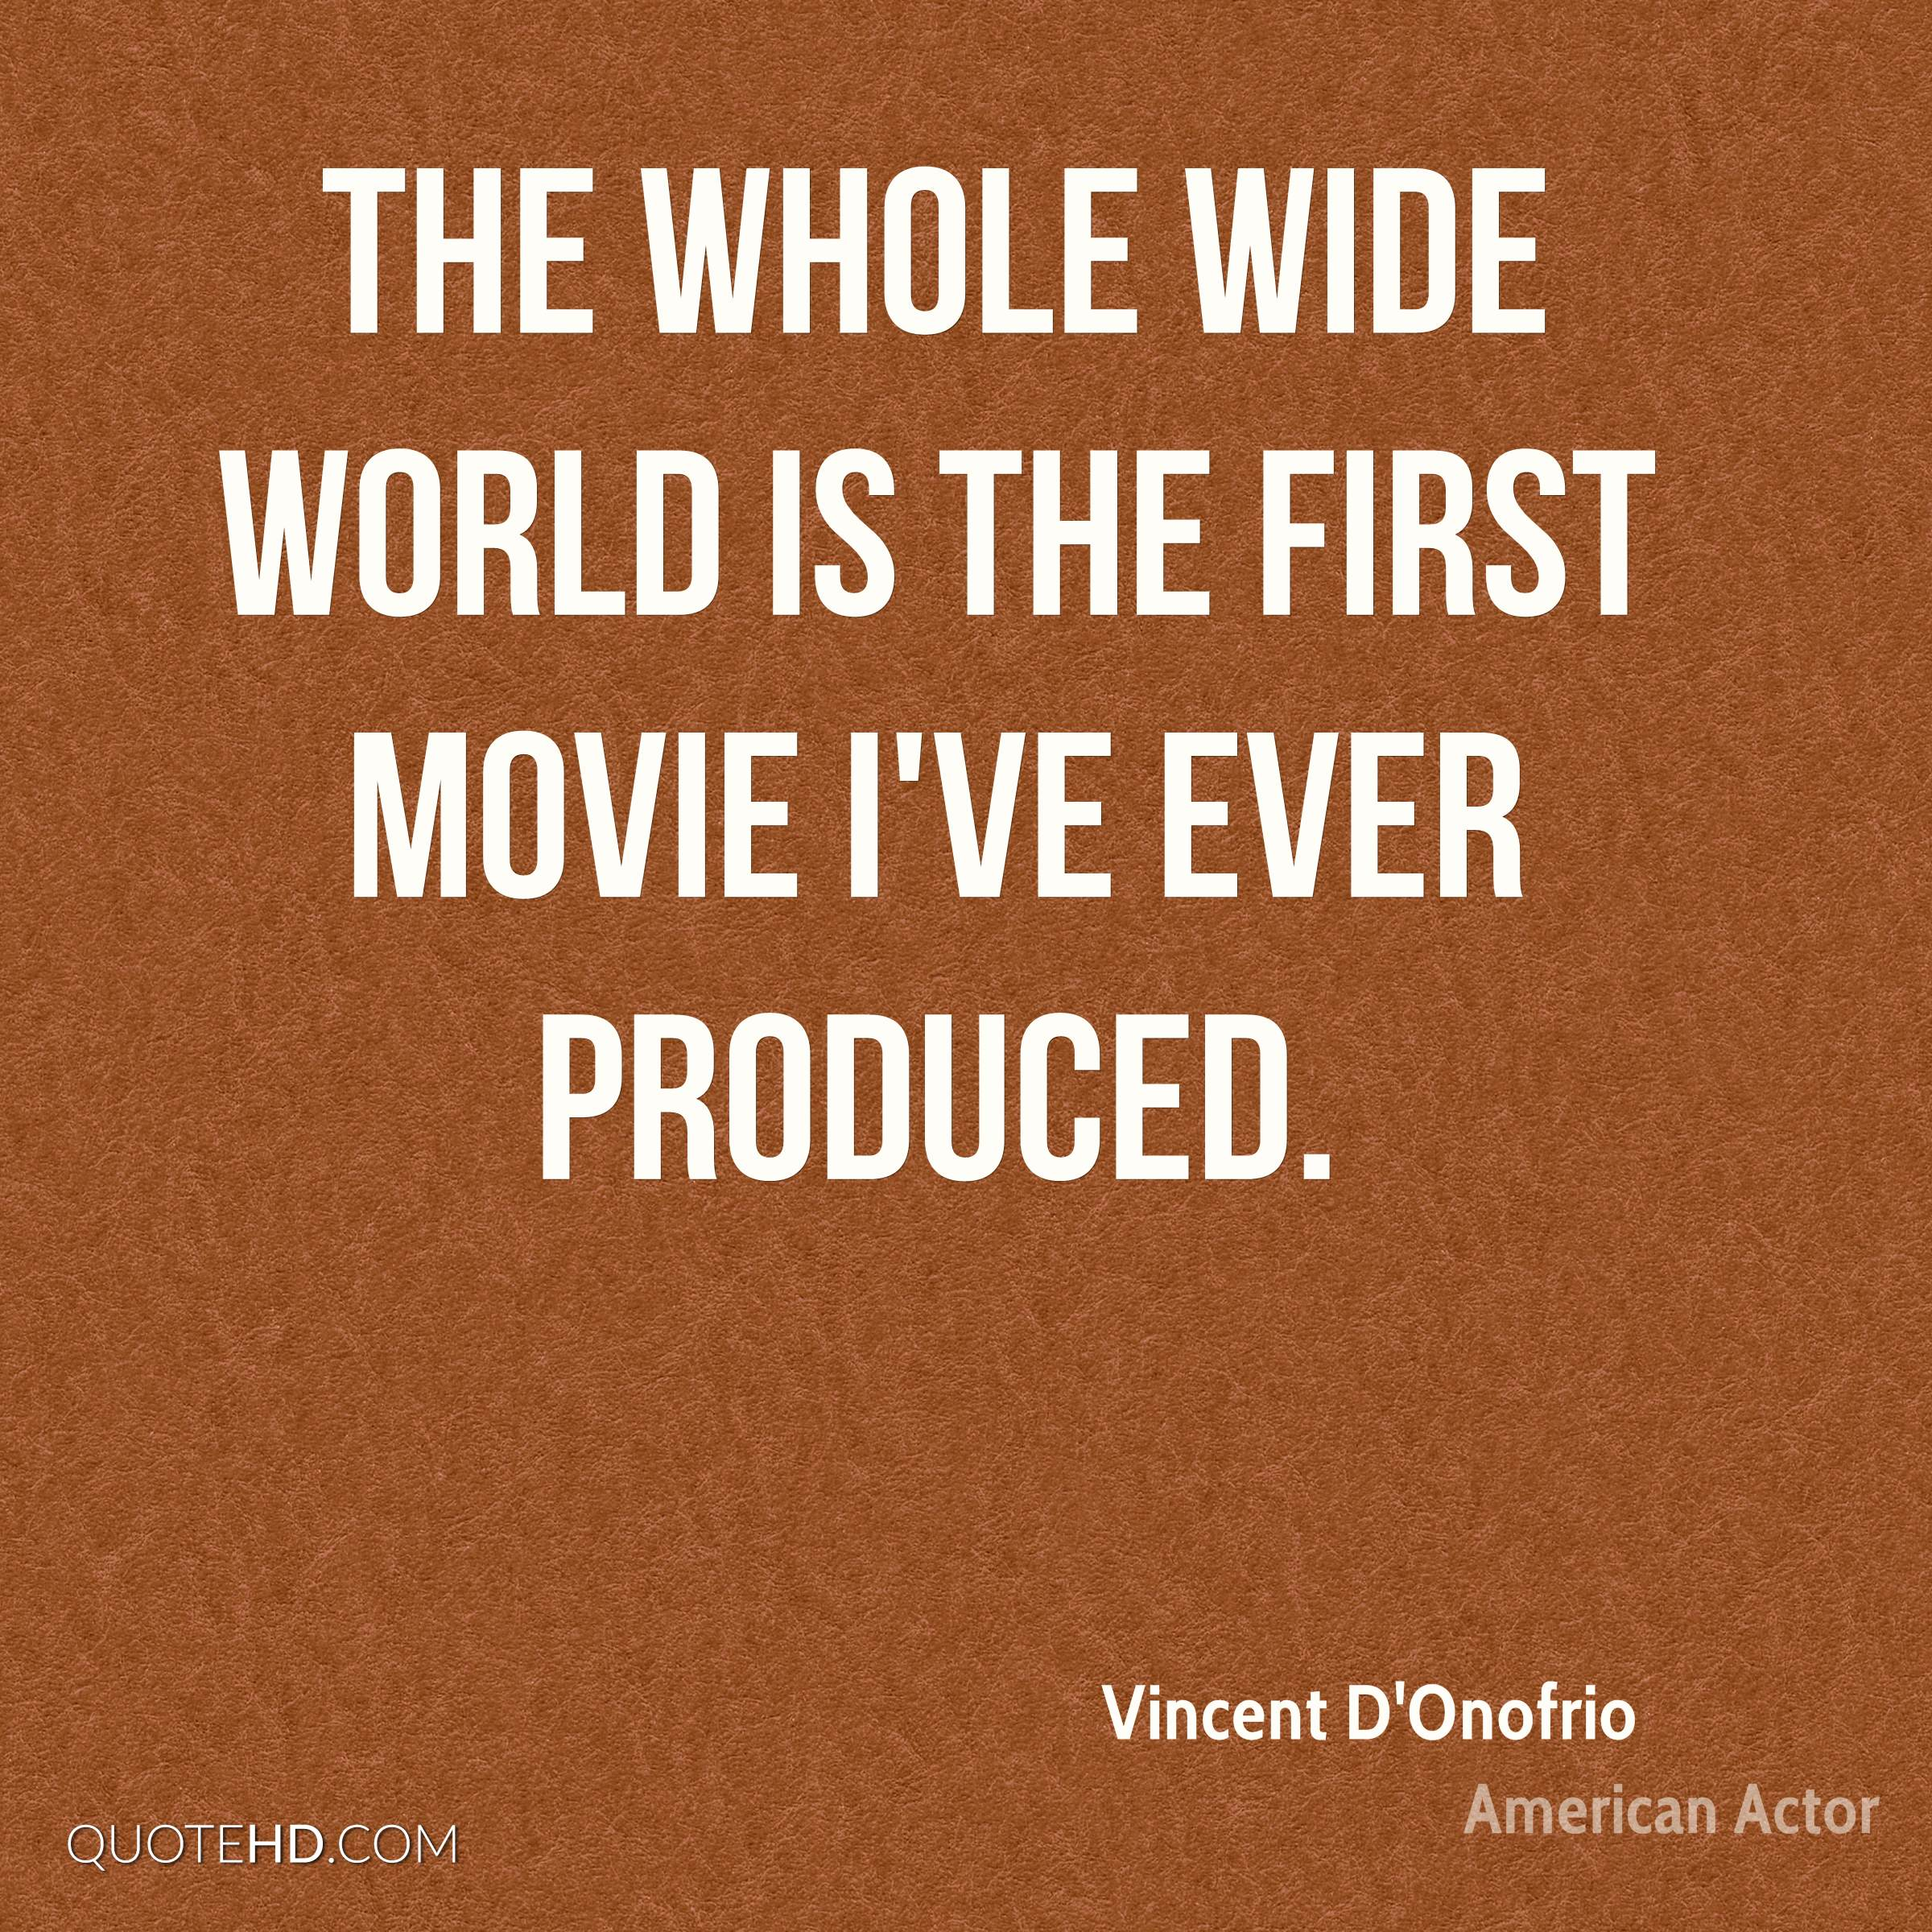 The Whole Wide World is the first movie I've ever produced.